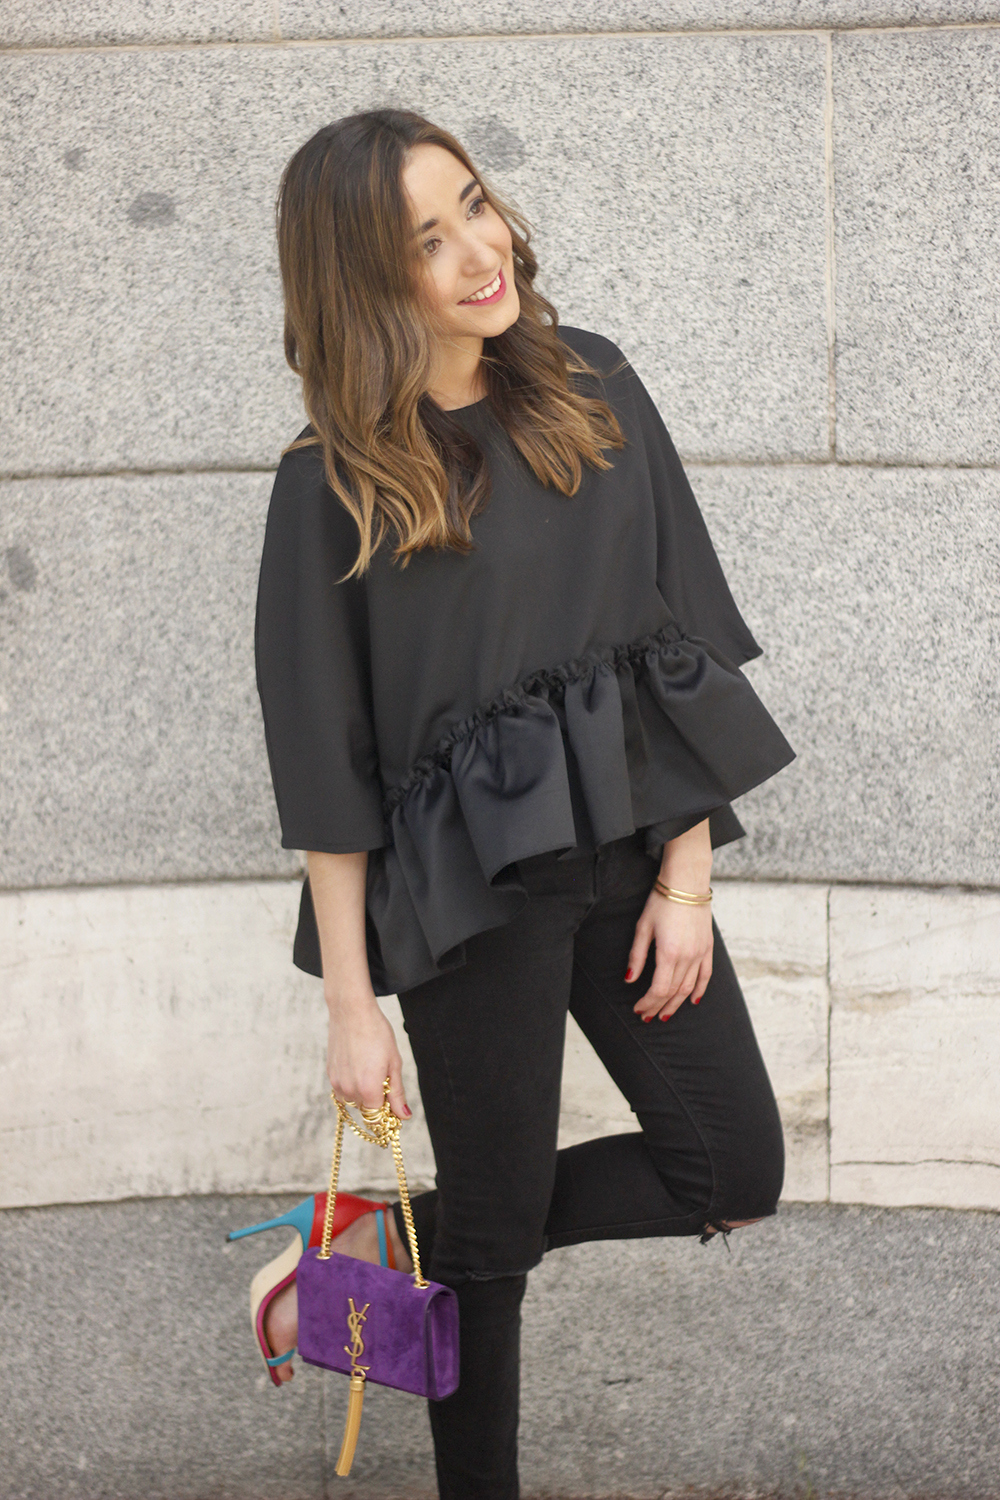 black top with a ruffle Carolina Herrera Sandals YSL bag accessories outfit style24